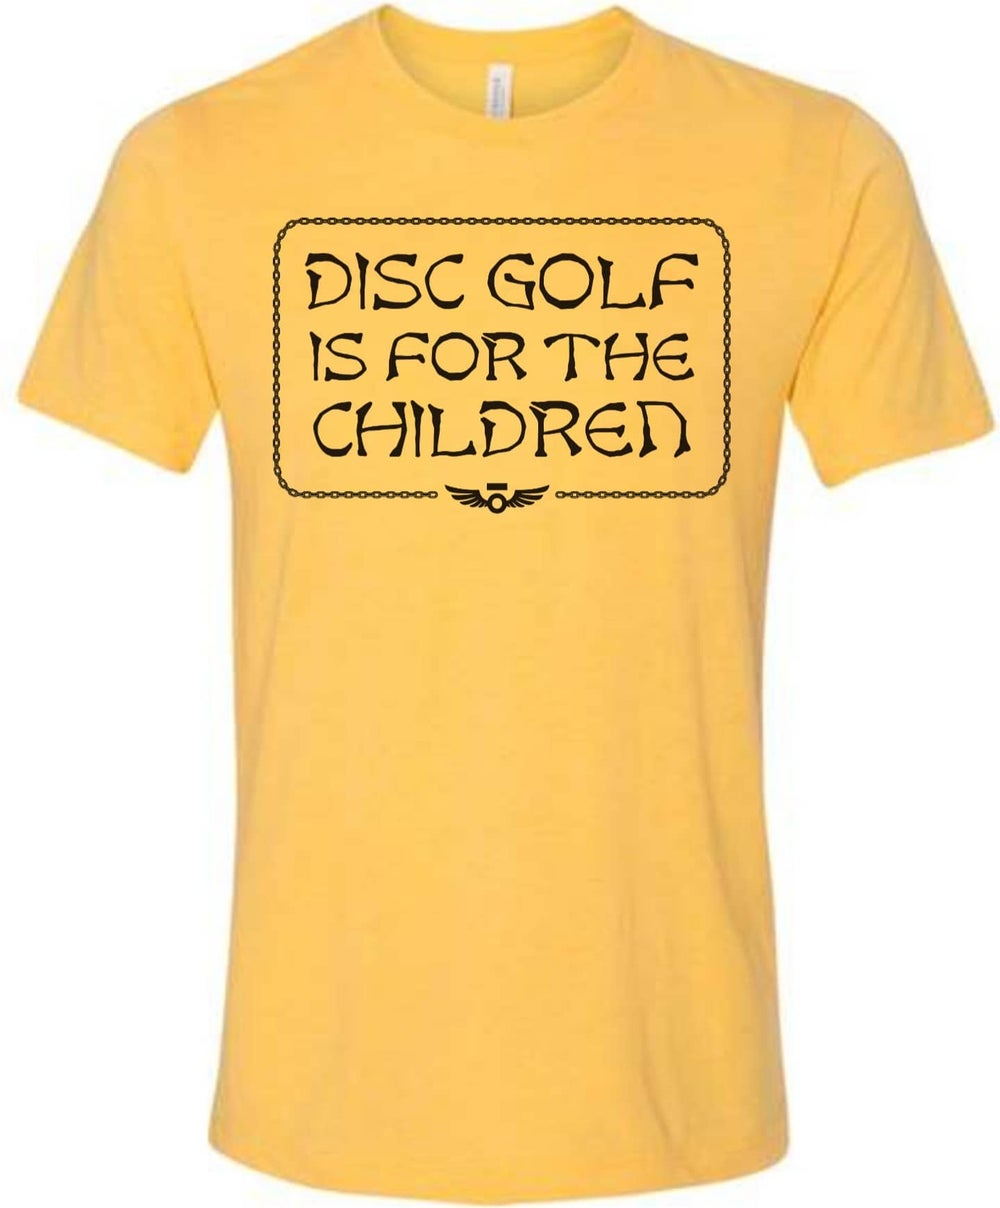 For the Children Tee